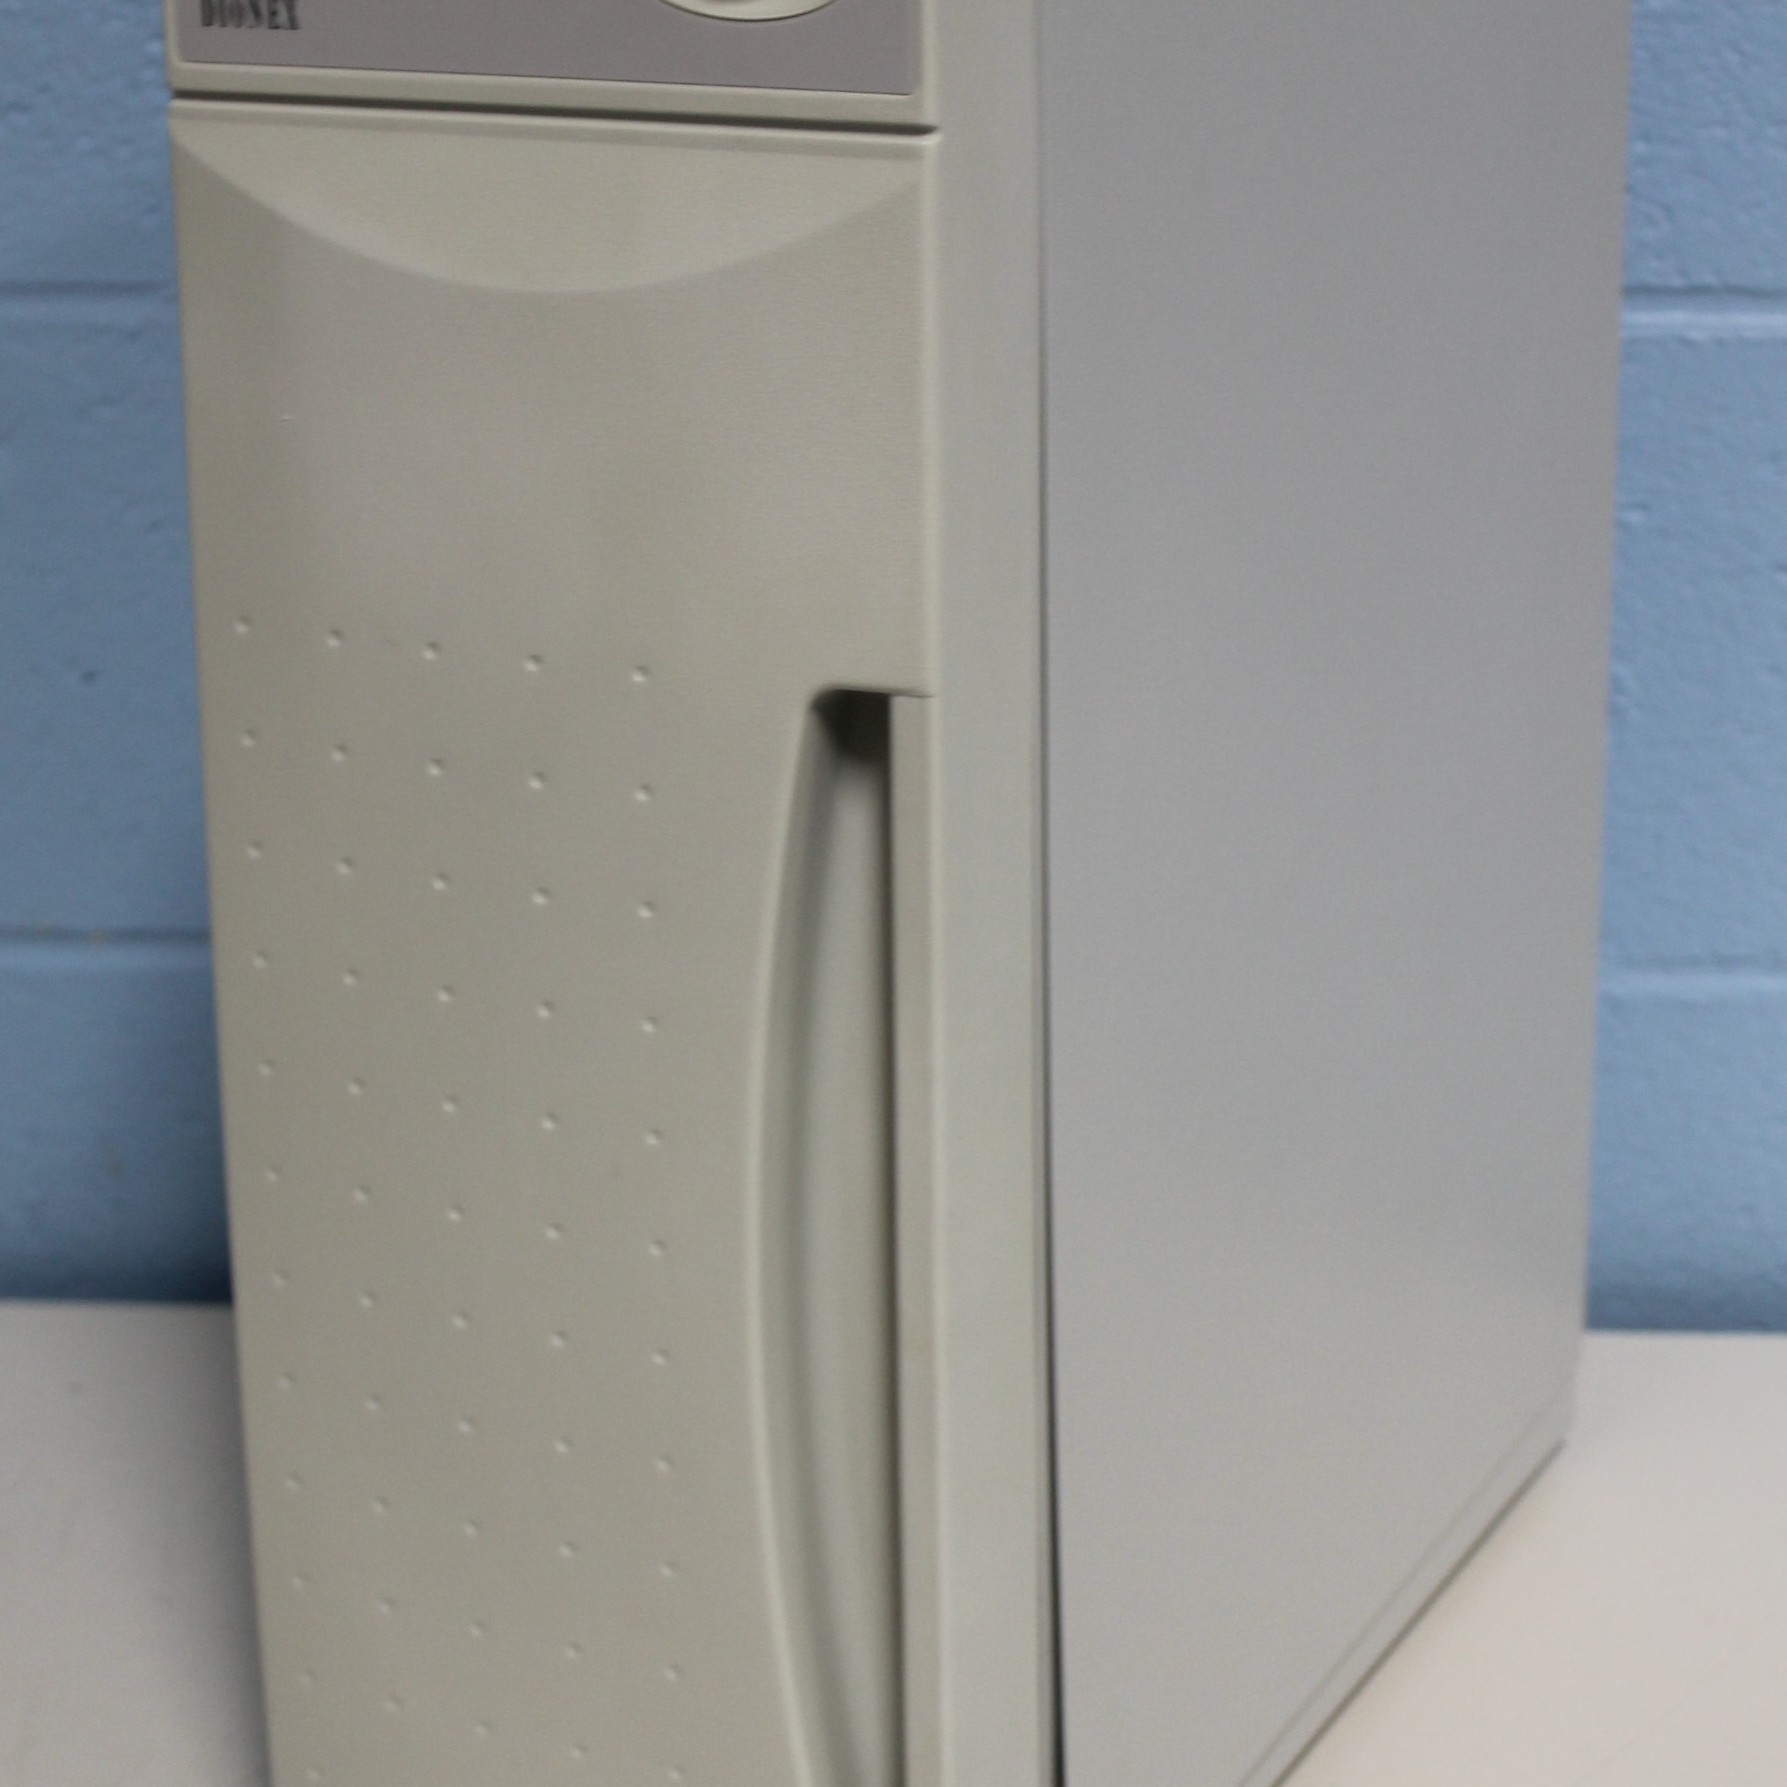 Dionex AS50 Chromatography Compartment Image